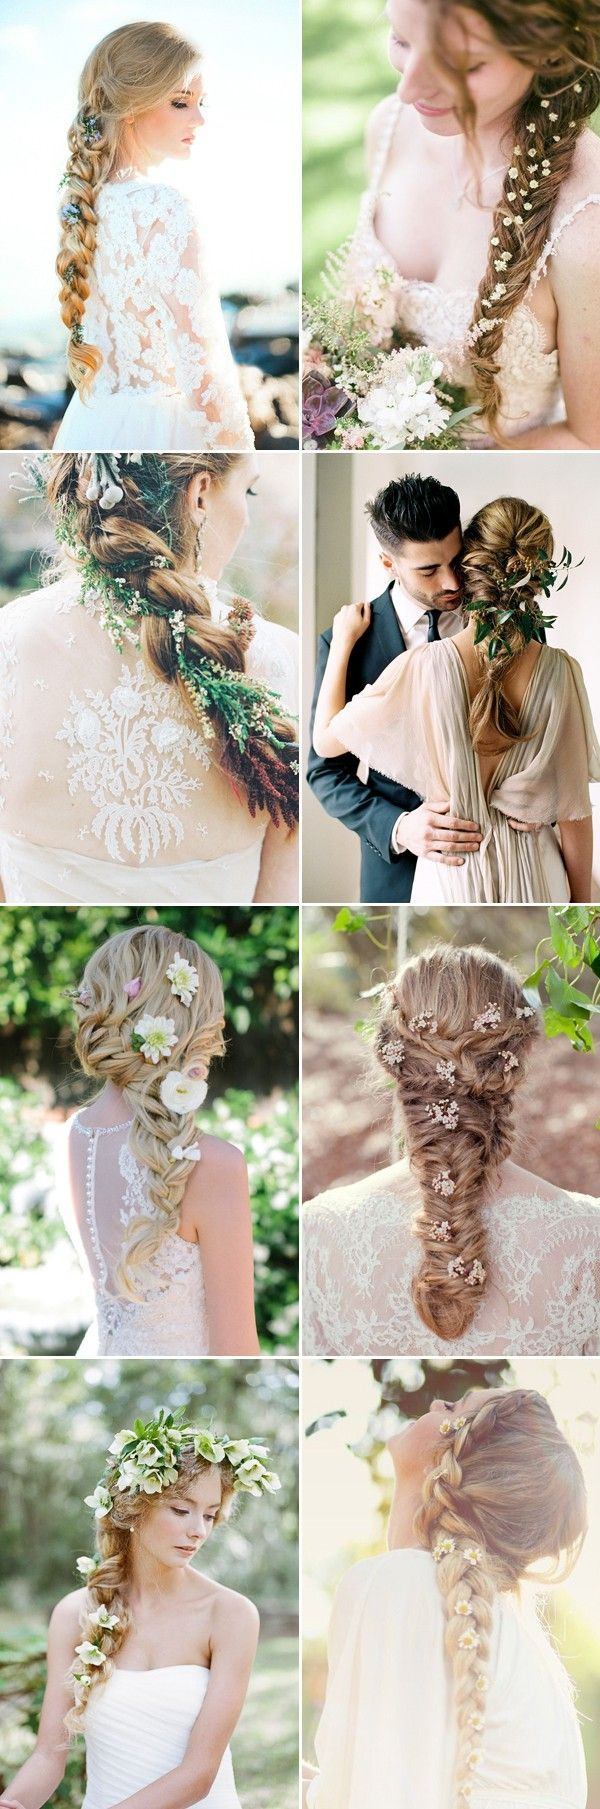 Braids wedding hairstyles with fresh flowers / http://www.himisspuff.com/bridal-wedding-hairstyles-for-long-hair/